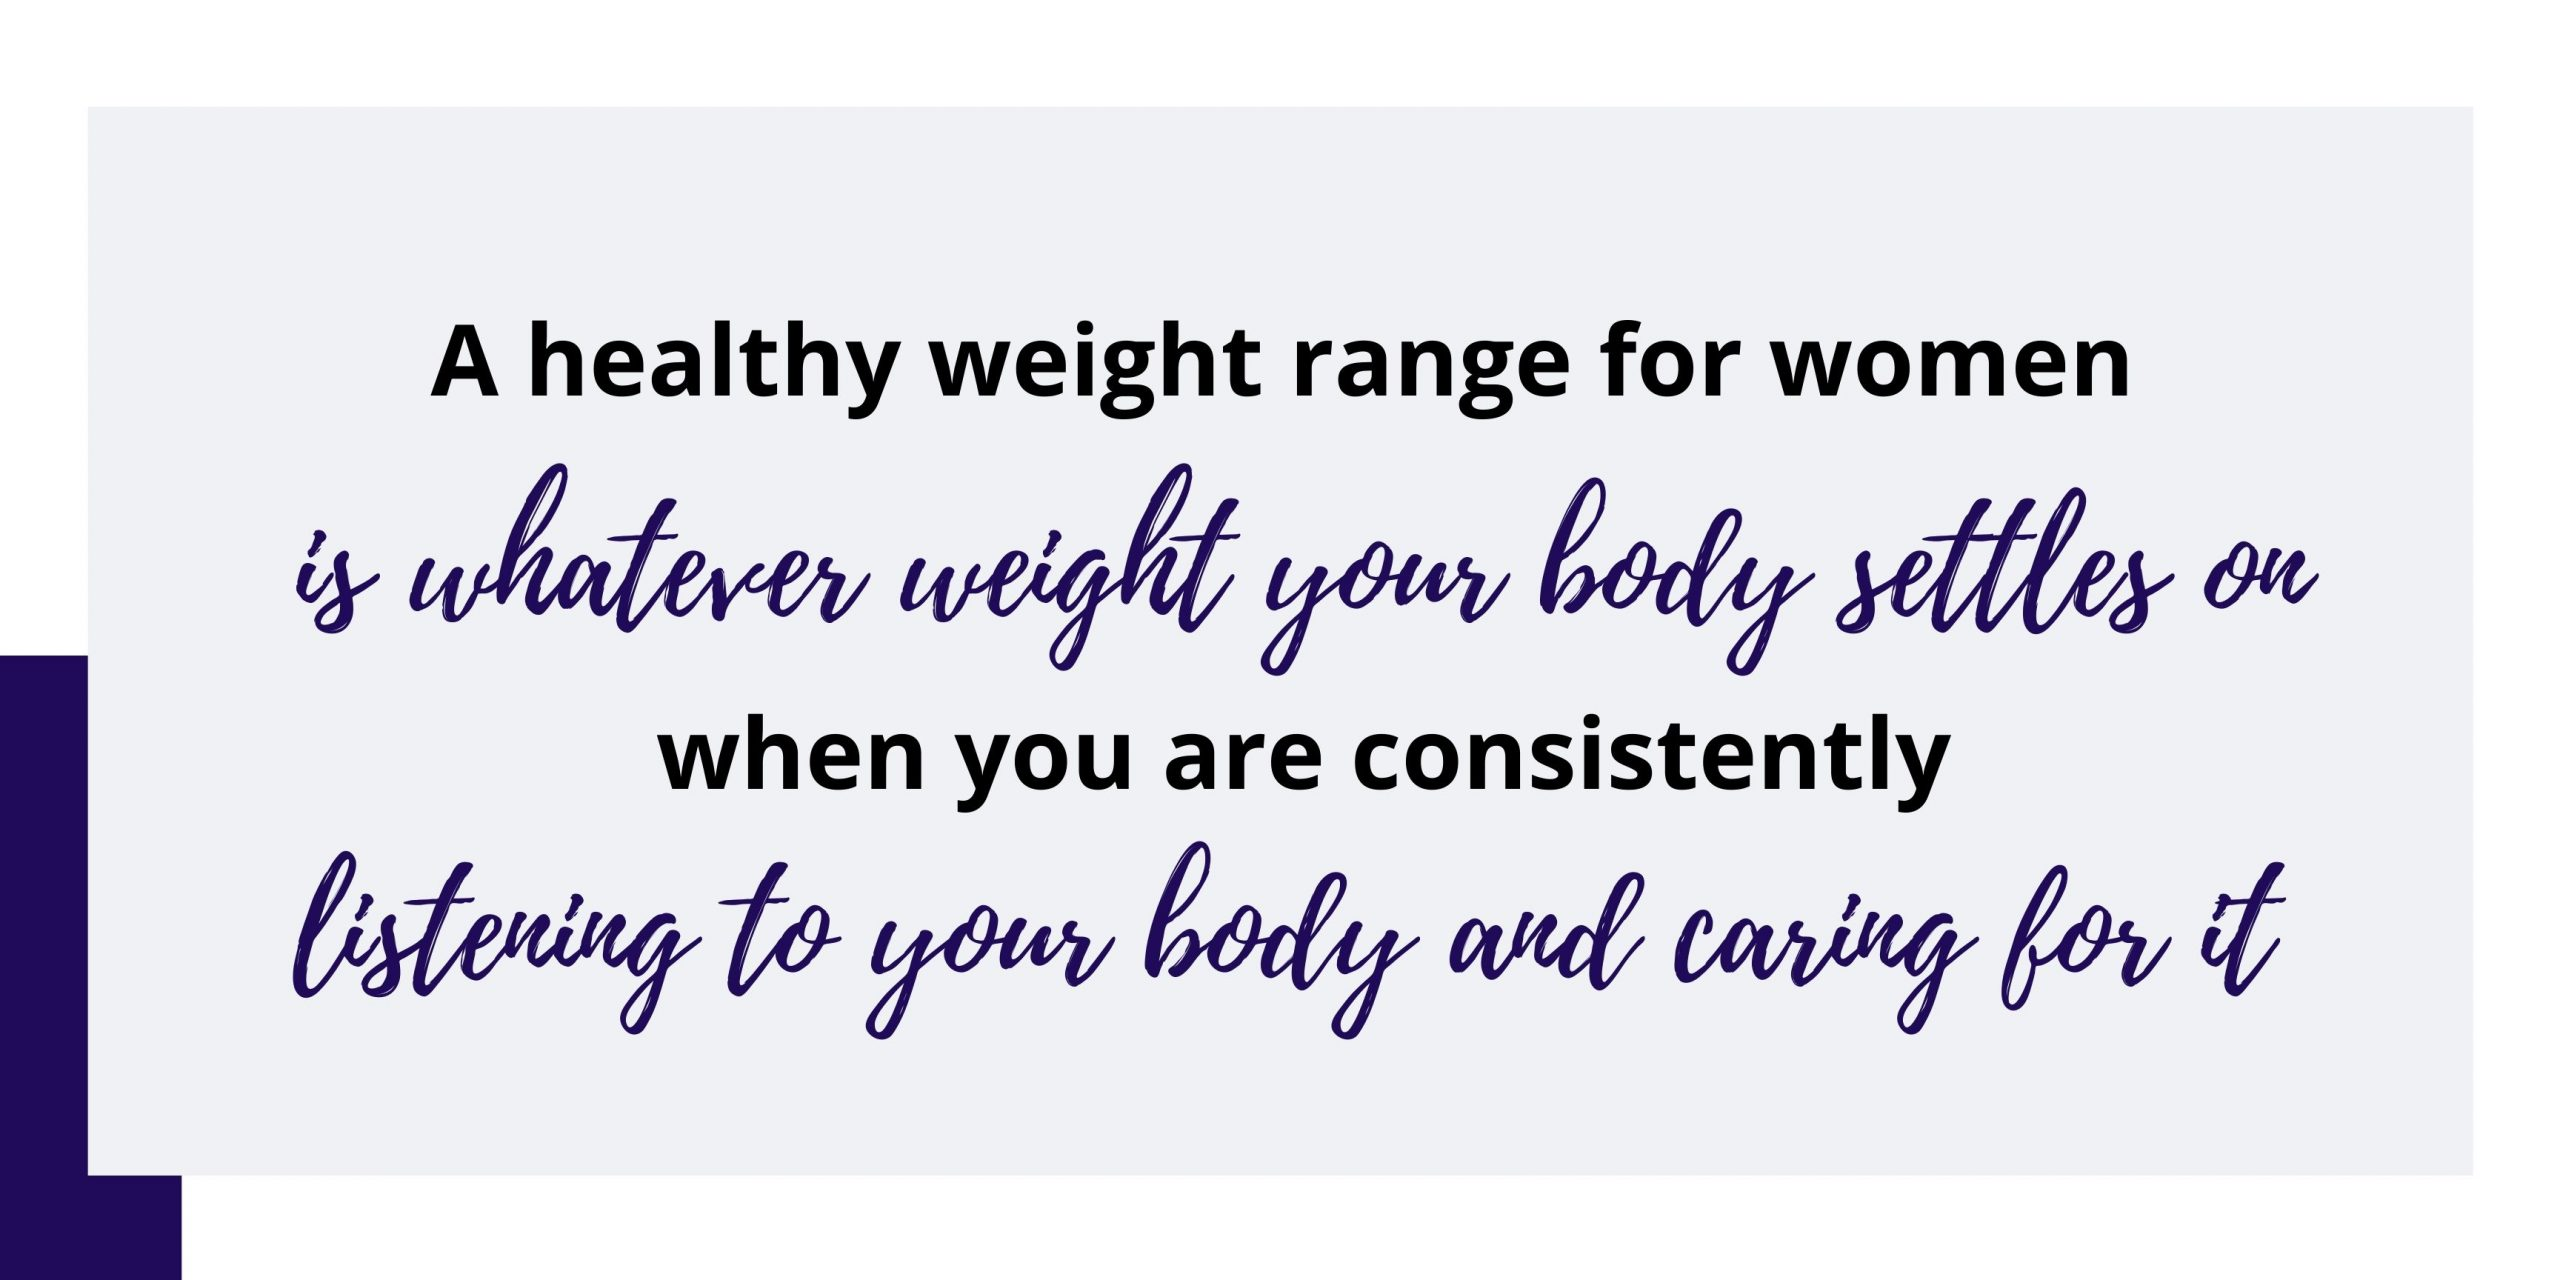 A healthy weight range for women is whatever weight your body settles on when you are consistently listening to your body and caring for it